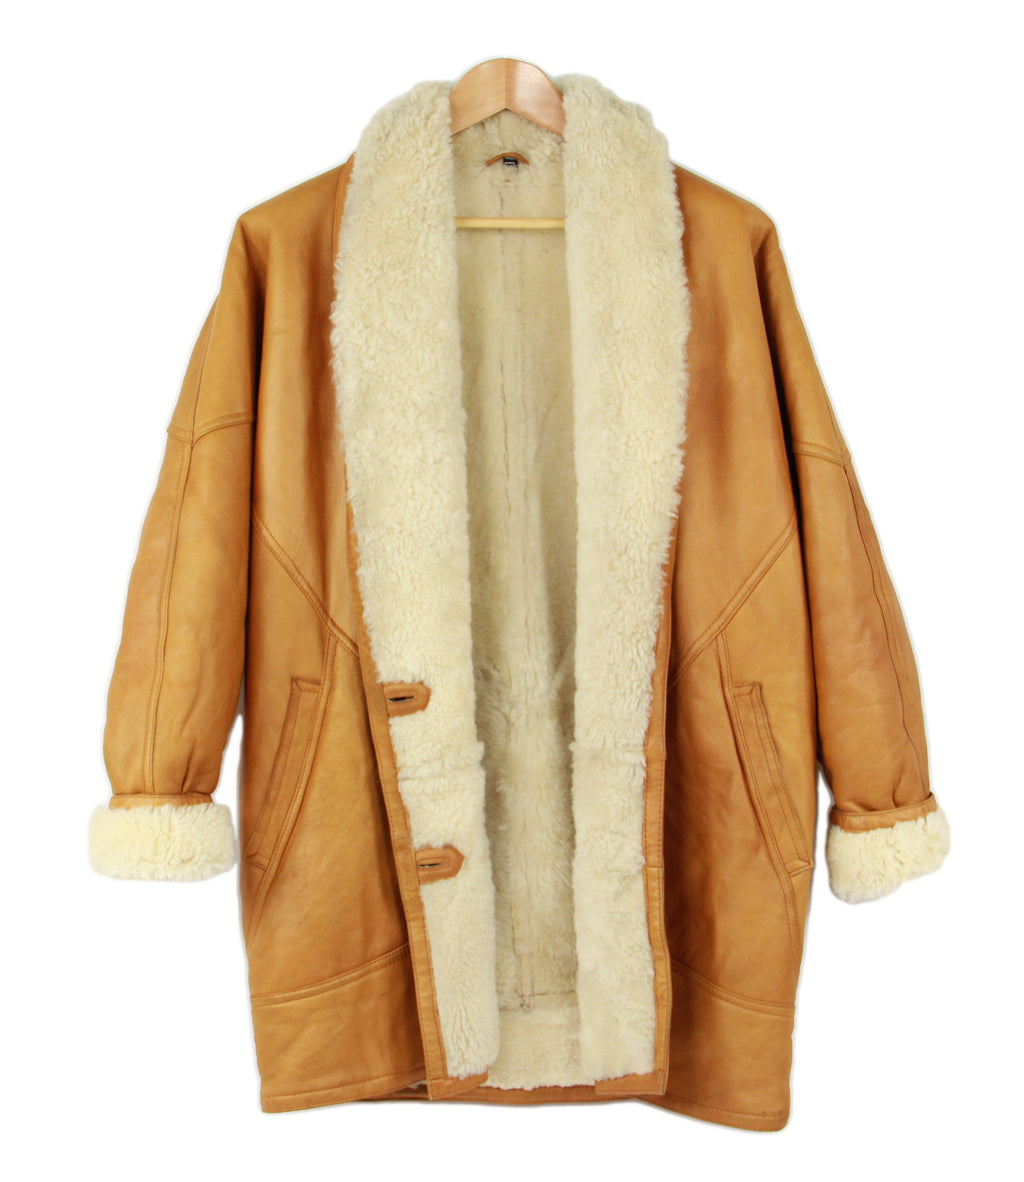 Women's Camel Brown Super Soft Shearling Cocoon Coat, M